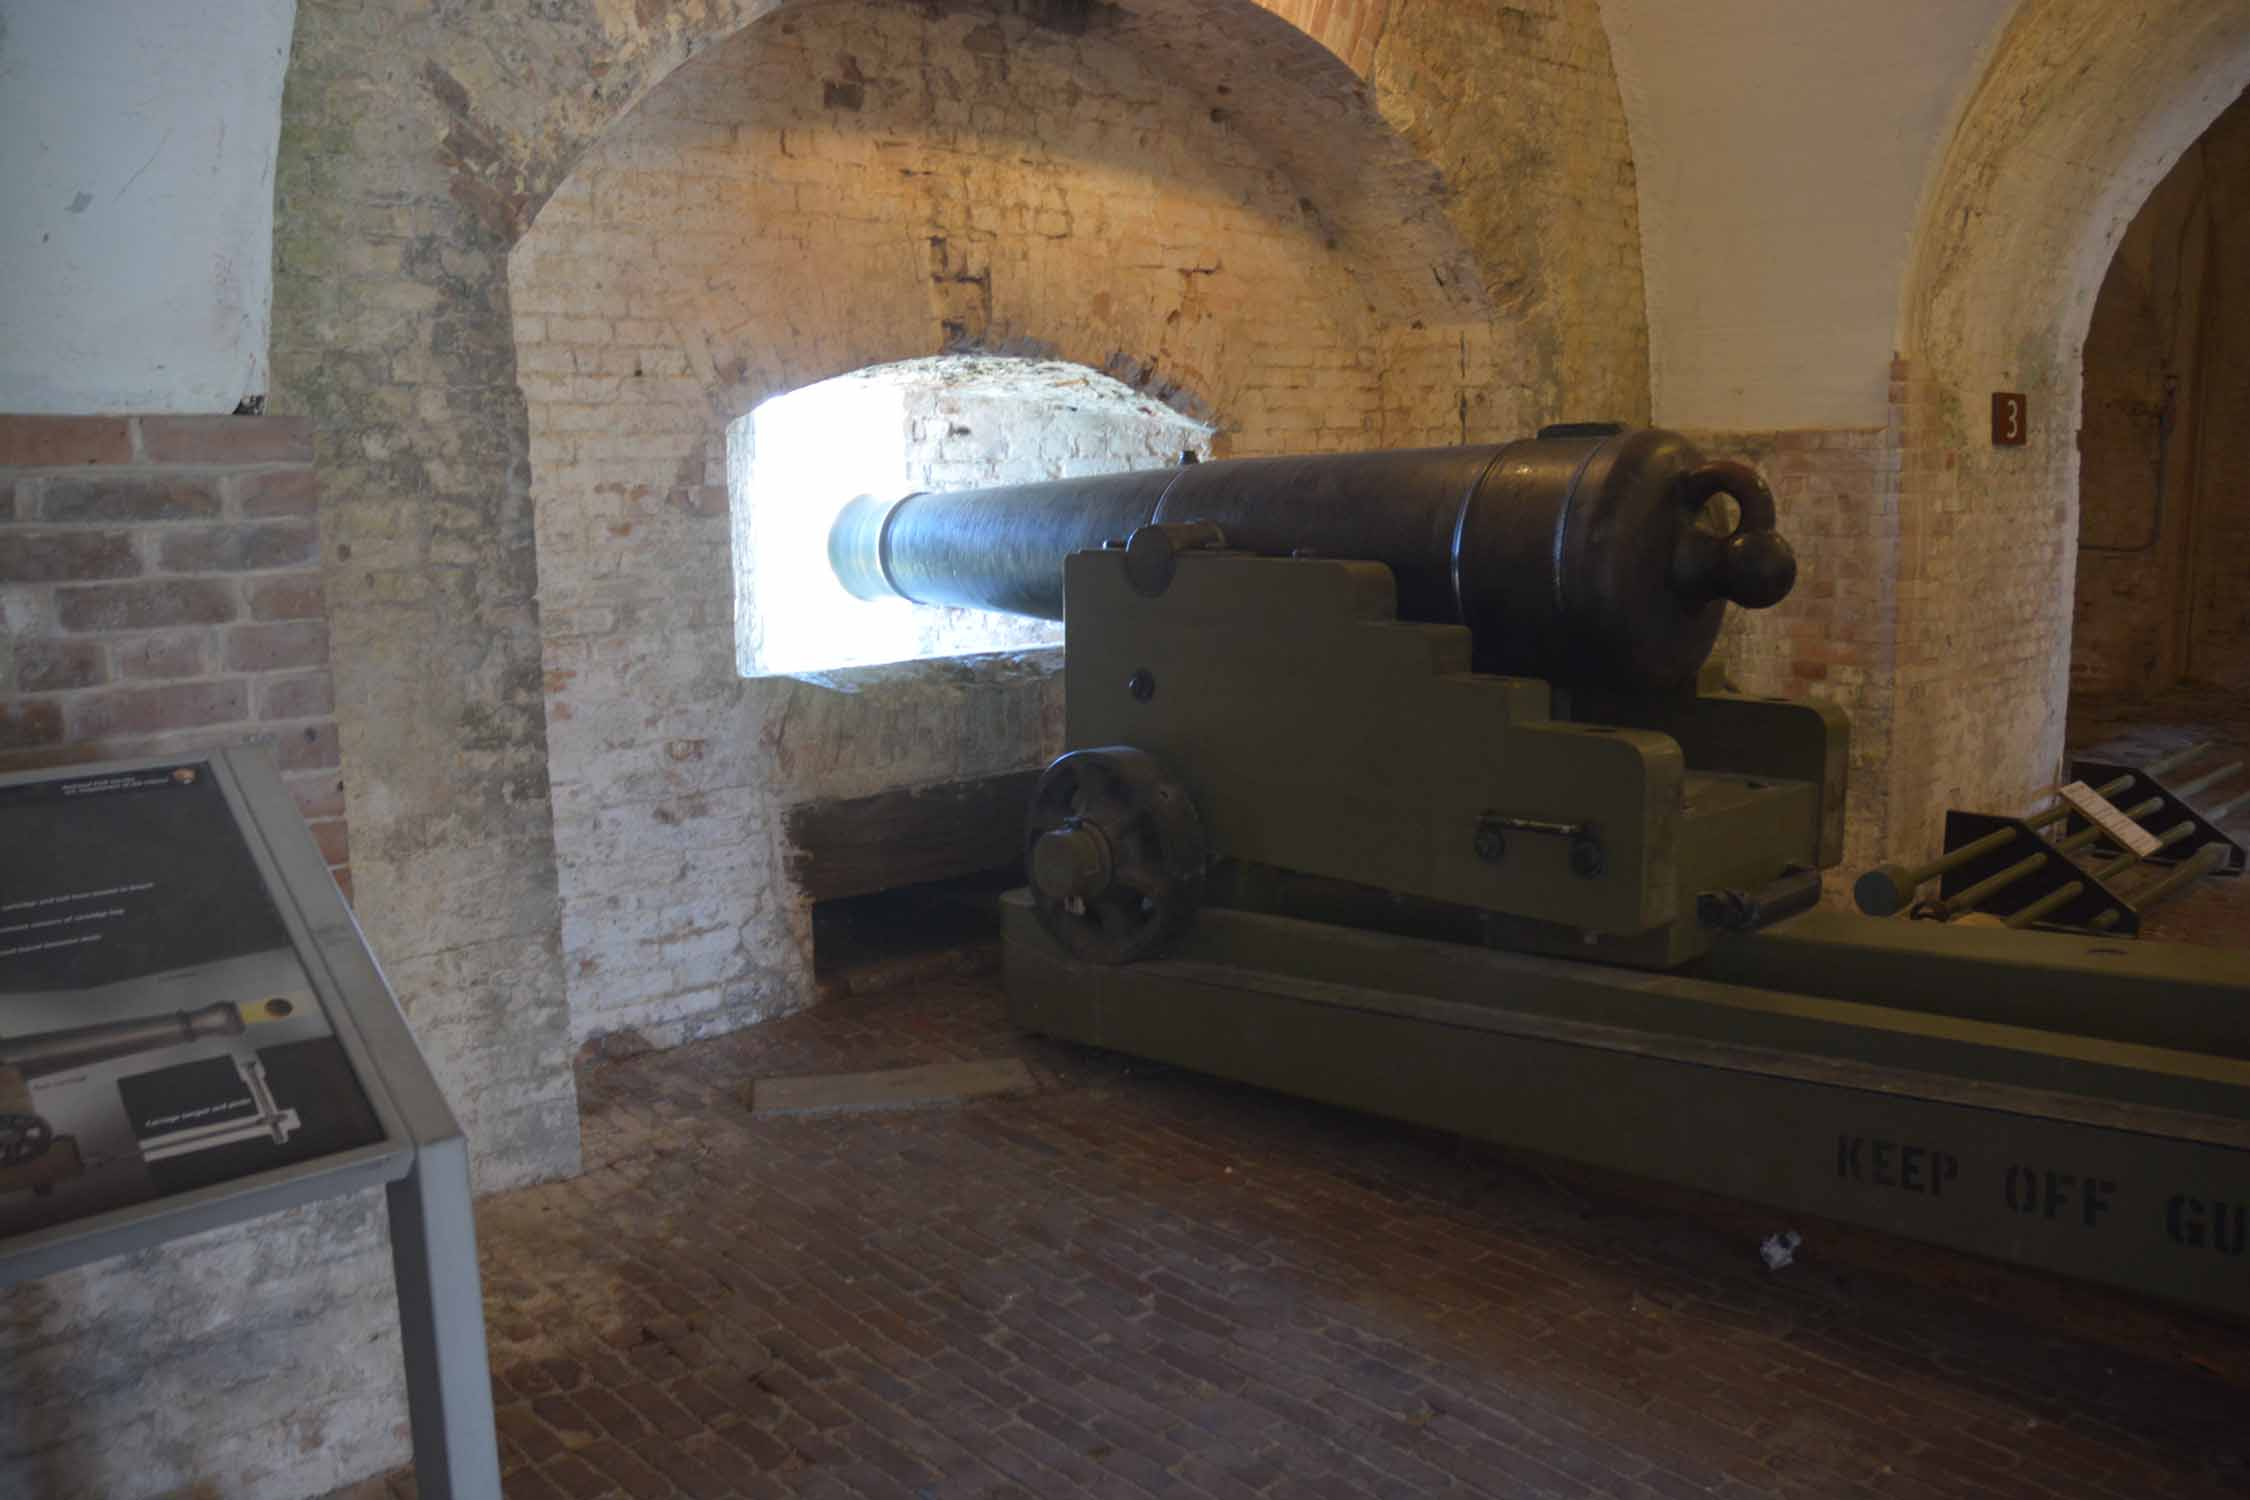 Here is an example of Fort Picken's military role...There are lots of big canons to look at...